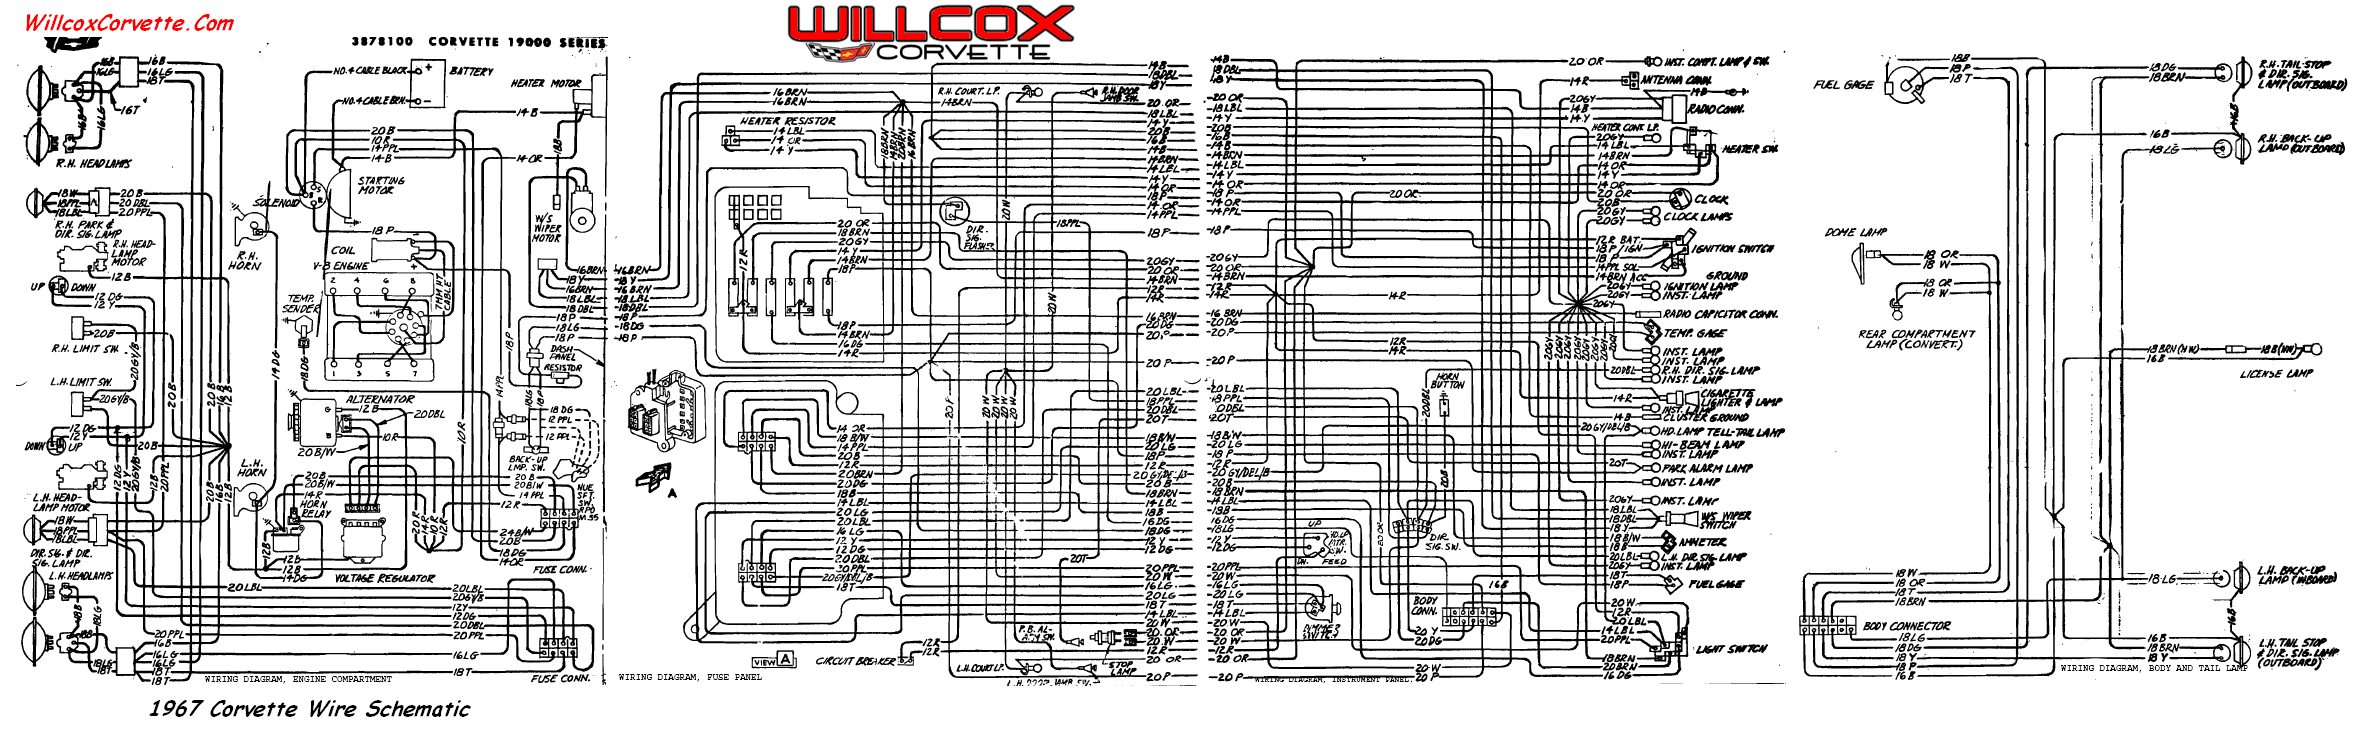 67 wire schematic for tracing wires wiring diagram for 1966 corvette readingrat net 66 Corvette at mifinder.co